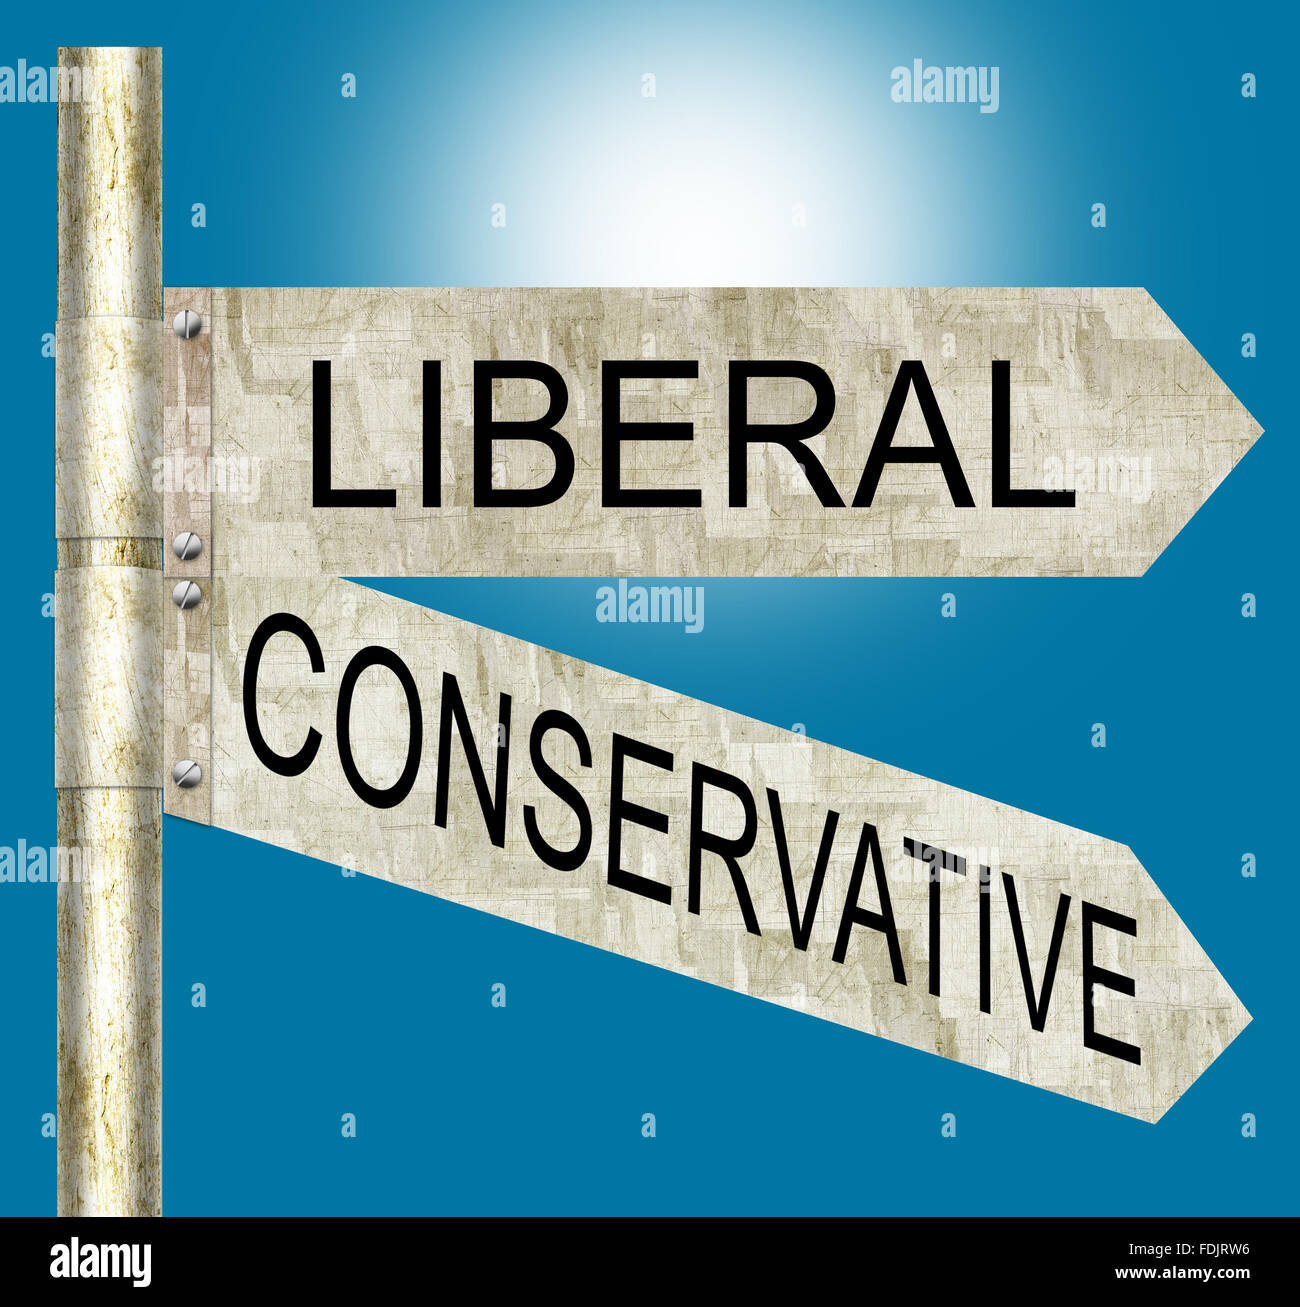 Liberal vs. Conservative Road Signs - Stock Image